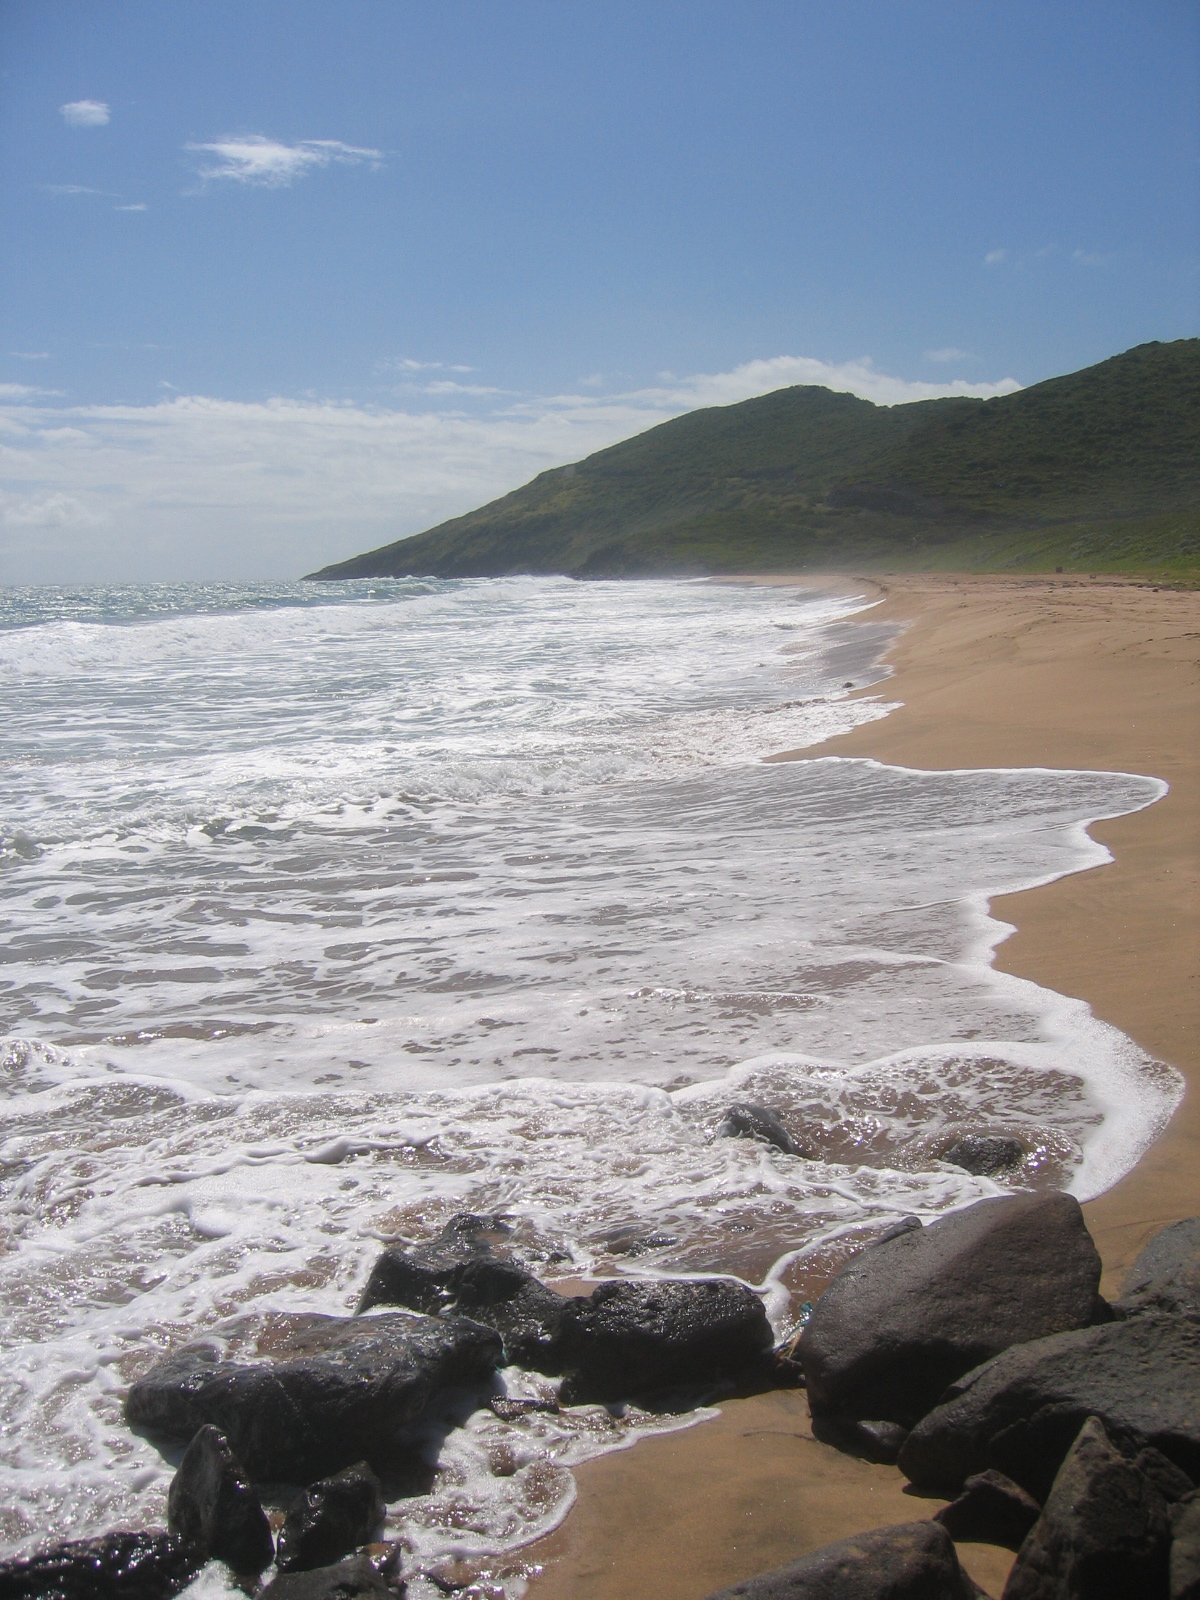 North Friar Beach, St. Kitts